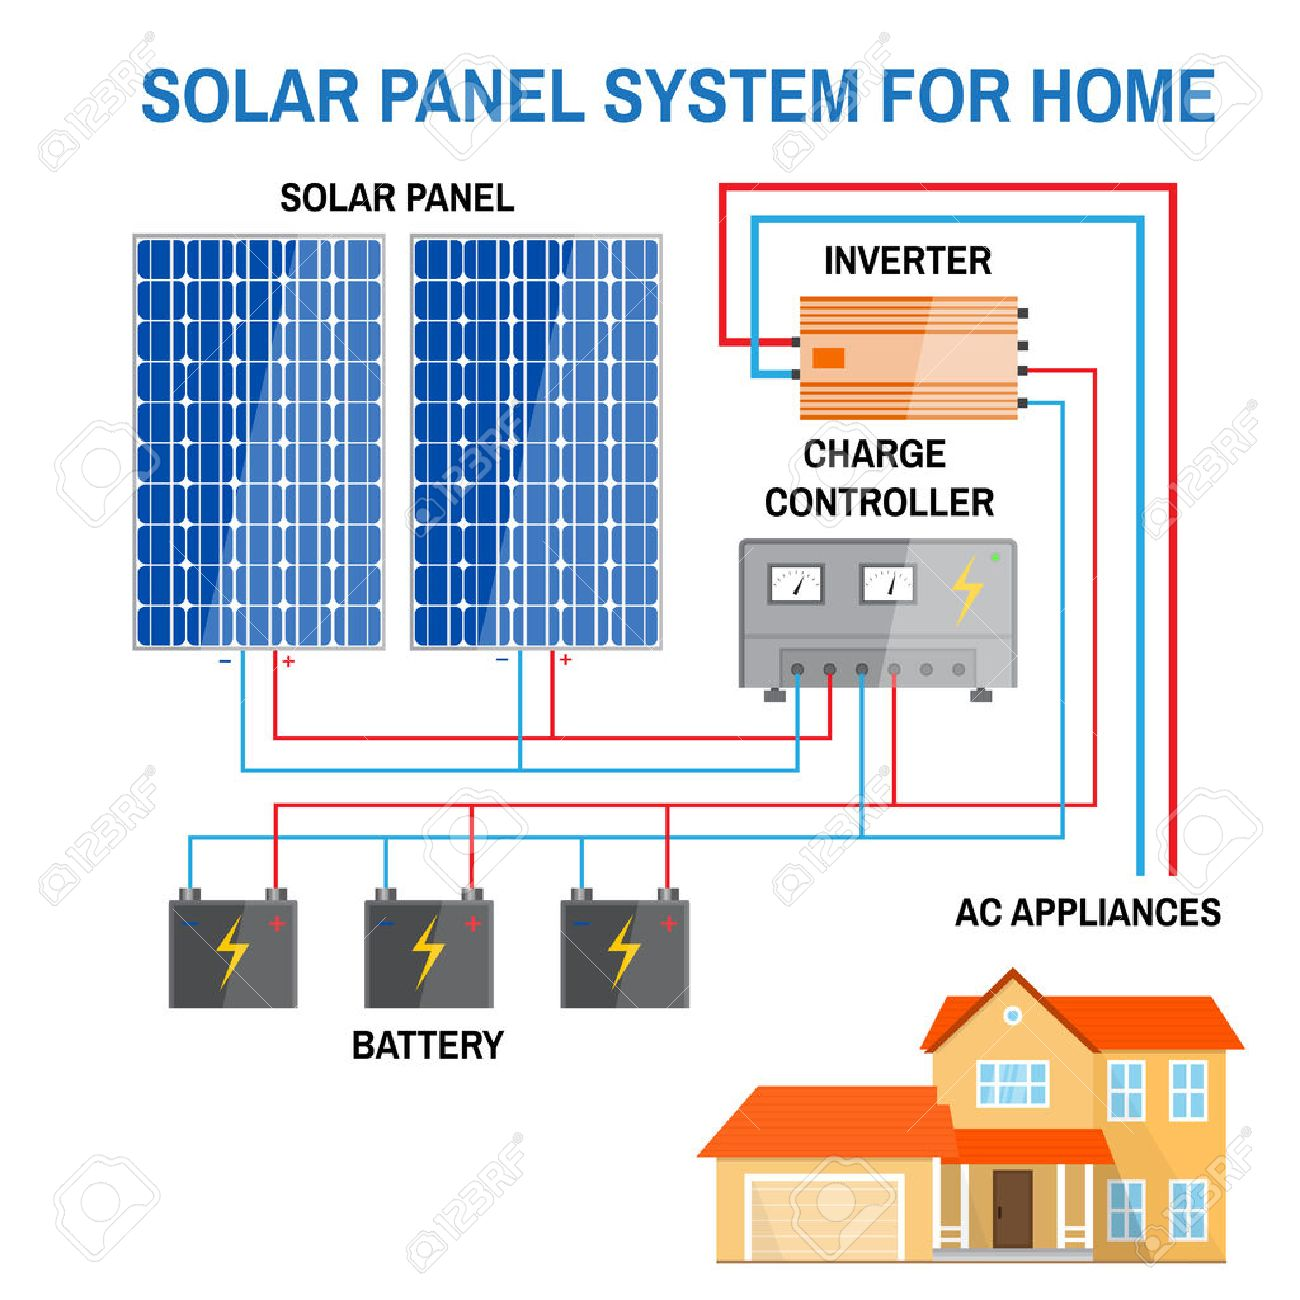 Solar panel system for home. Renewable energy concept. Simplified diagram of an off-grid system. Photovoltaic panels, battery, charge controller and inverter. Vector illustration. - 62247224